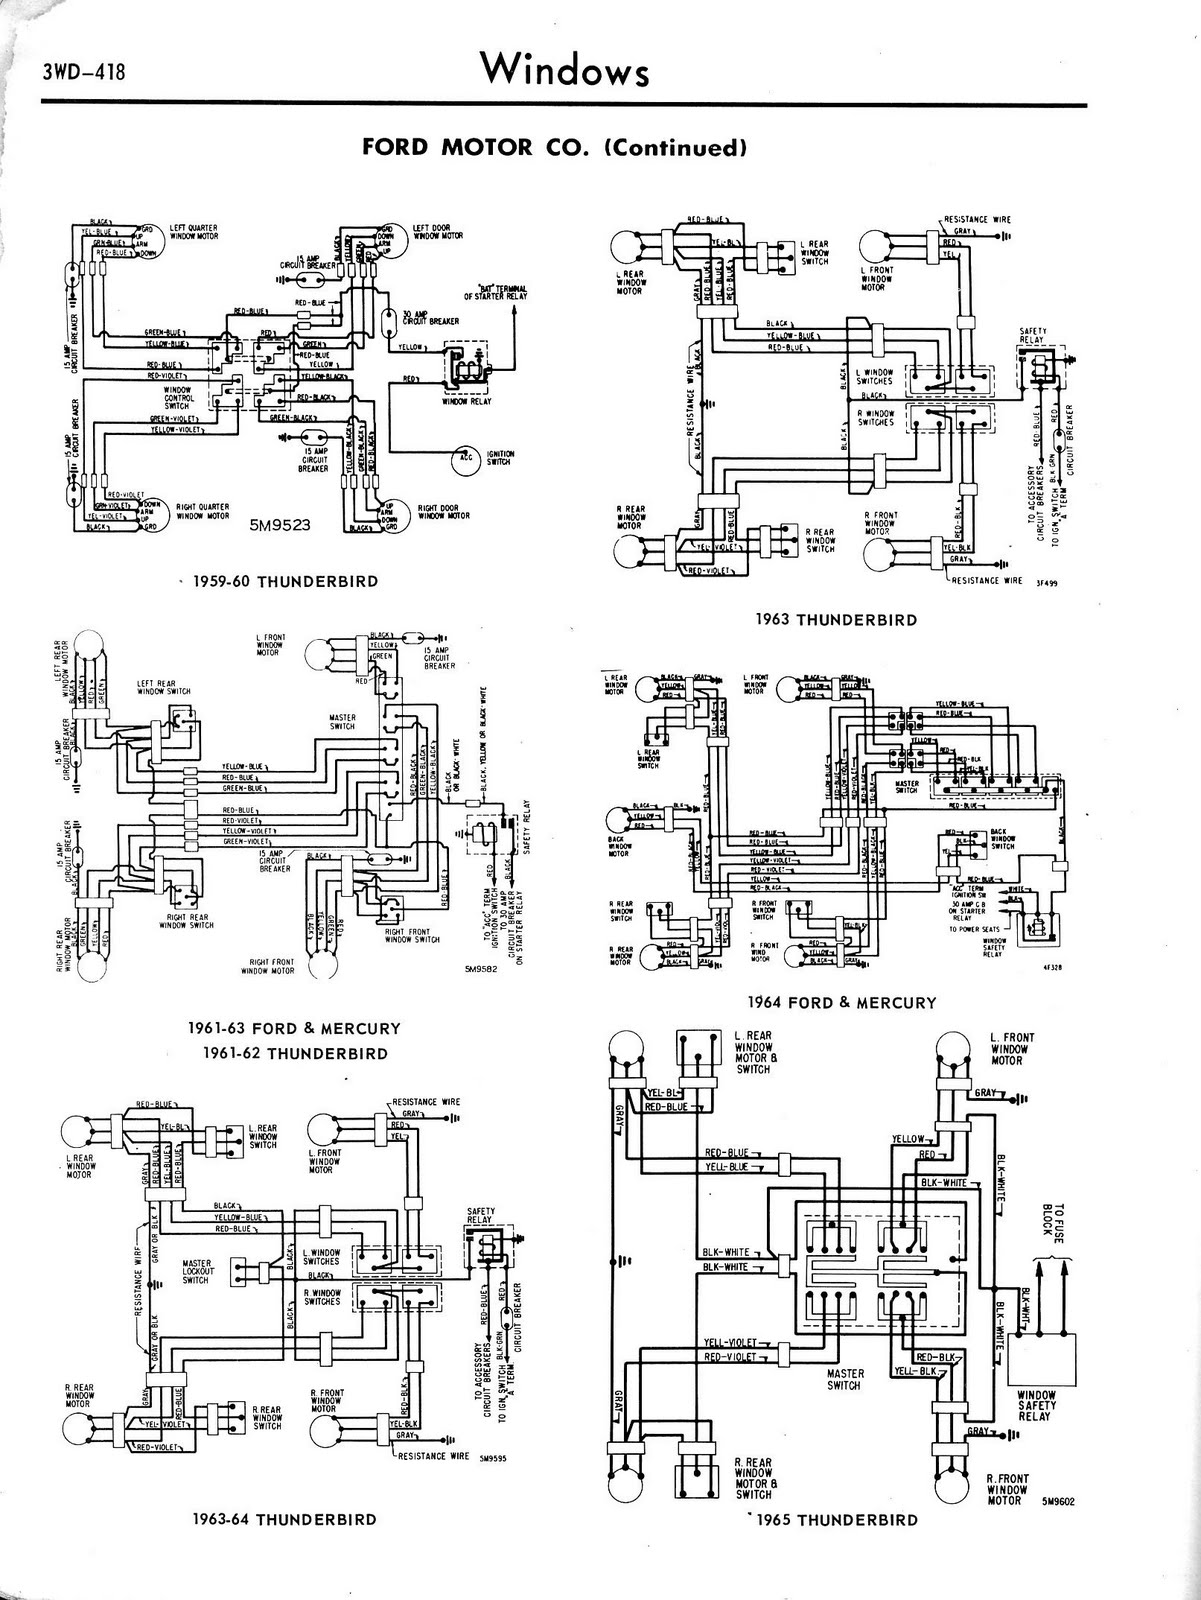 1965+Ford+Thunderbird+Window+Controls+Diagram 1965 thunderbird wiring diagram 1965 ford thunderbird wiring 1955 thunderbird wiring diagram at crackthecode.co